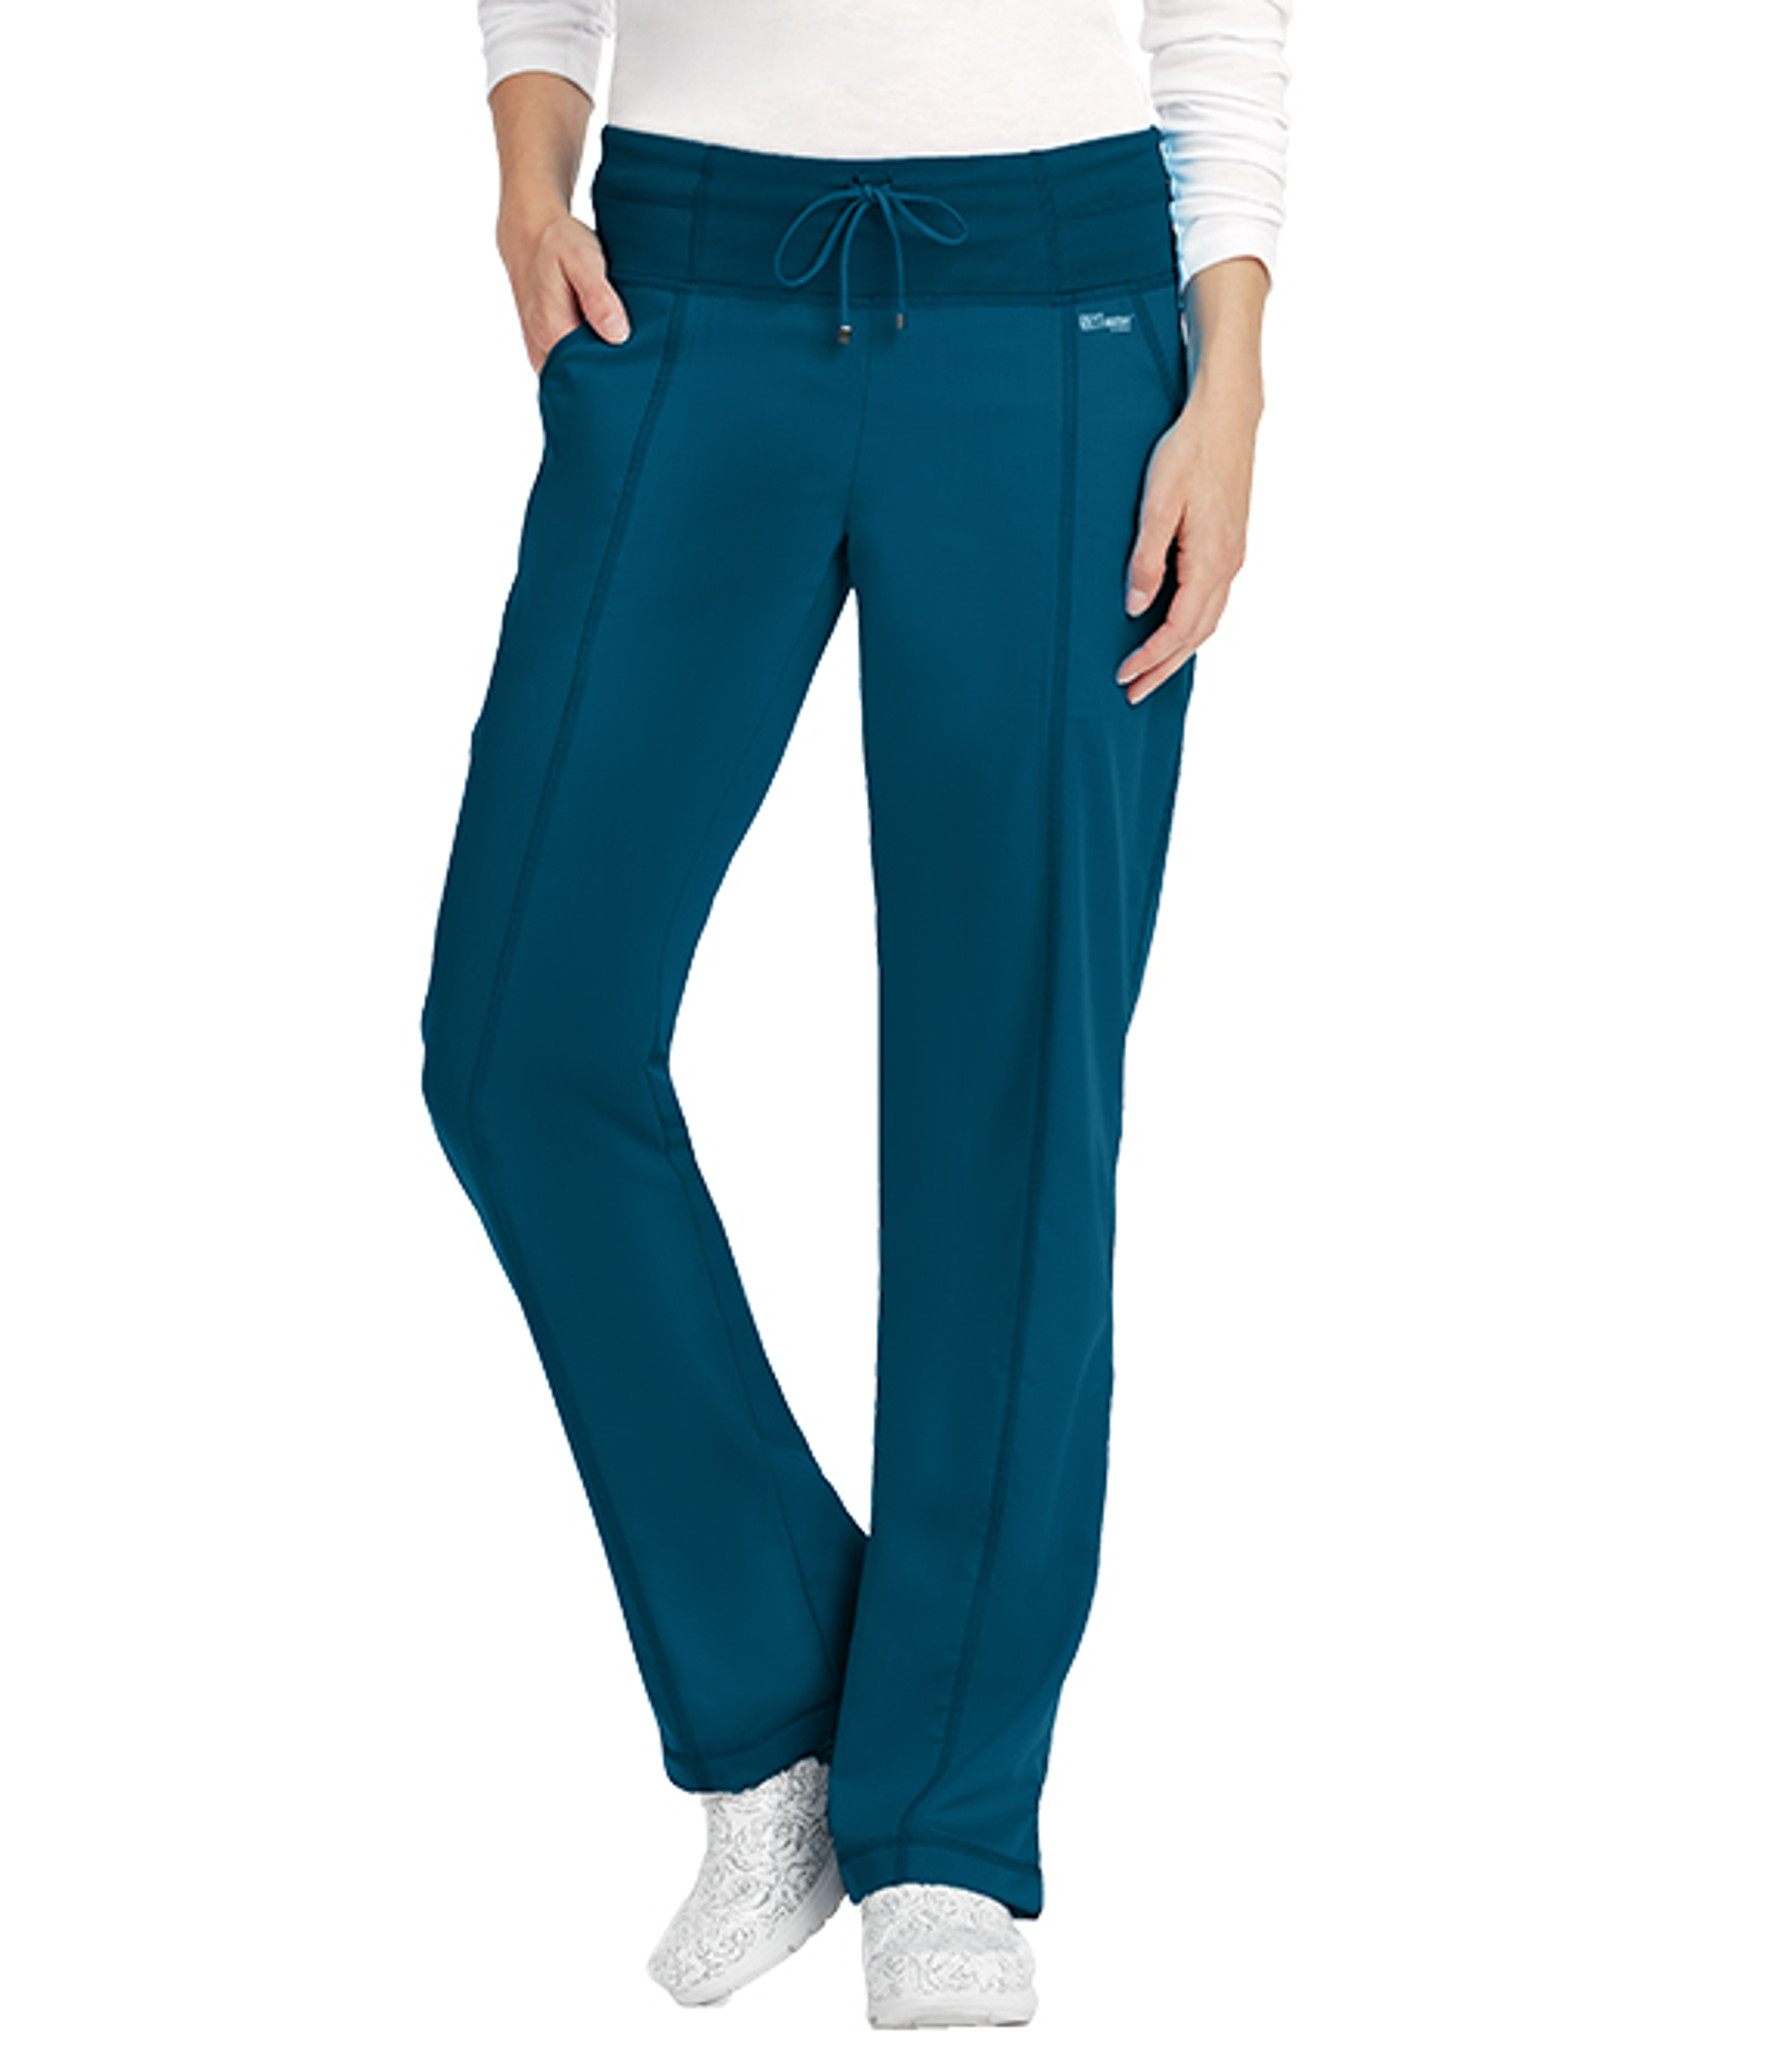 Barco Grey's Anatomy Active yoga waist women's scrub pants is on trend with a soft and wide yoga waist band with a fashion drawstring tie front to keep you comfy all shift long. Four spacious pockets give you plenty of room to hold your accessories and nursing gear. (4276) Model